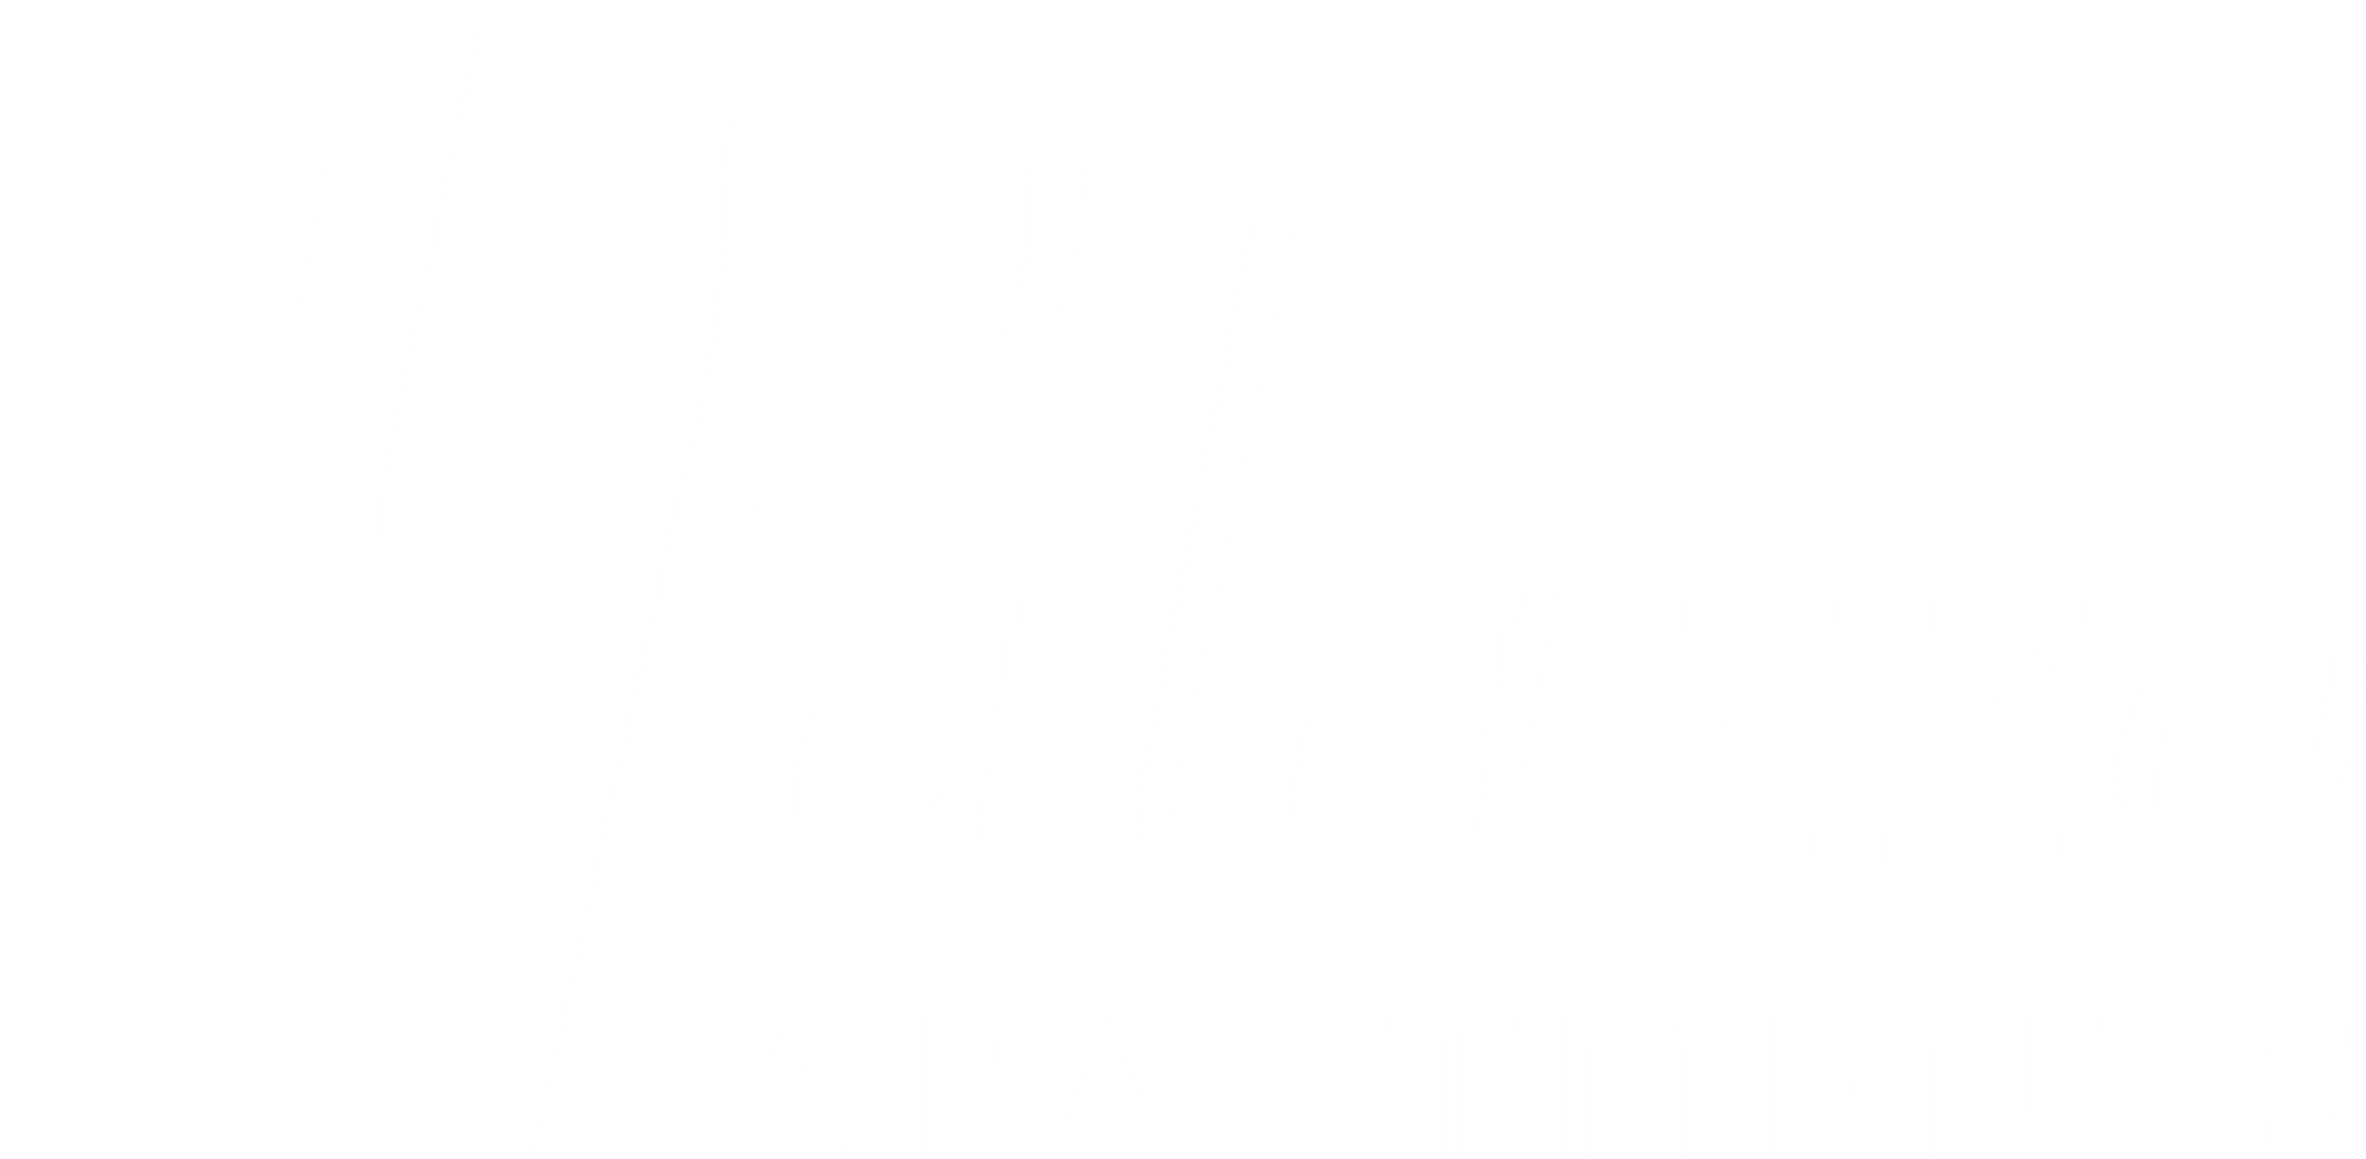 two bedroom apartments, two bedroom little italy apartments, il palazzo apartments, san diego apartments